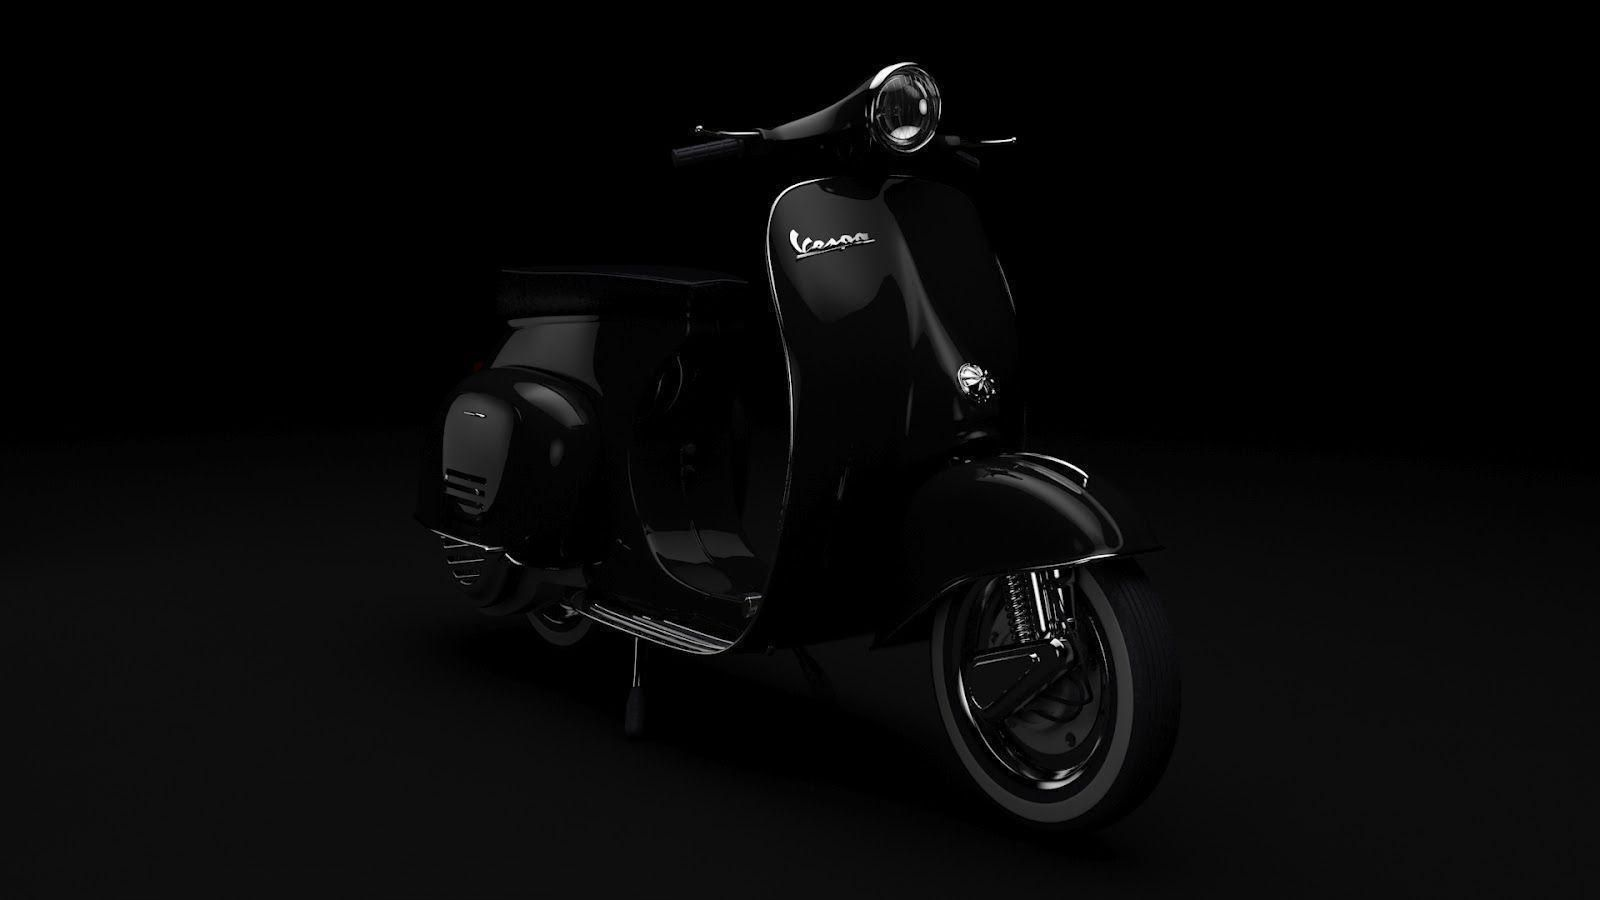 Vespa Bike Full Hd Wallpapers Free Download 16 With Images